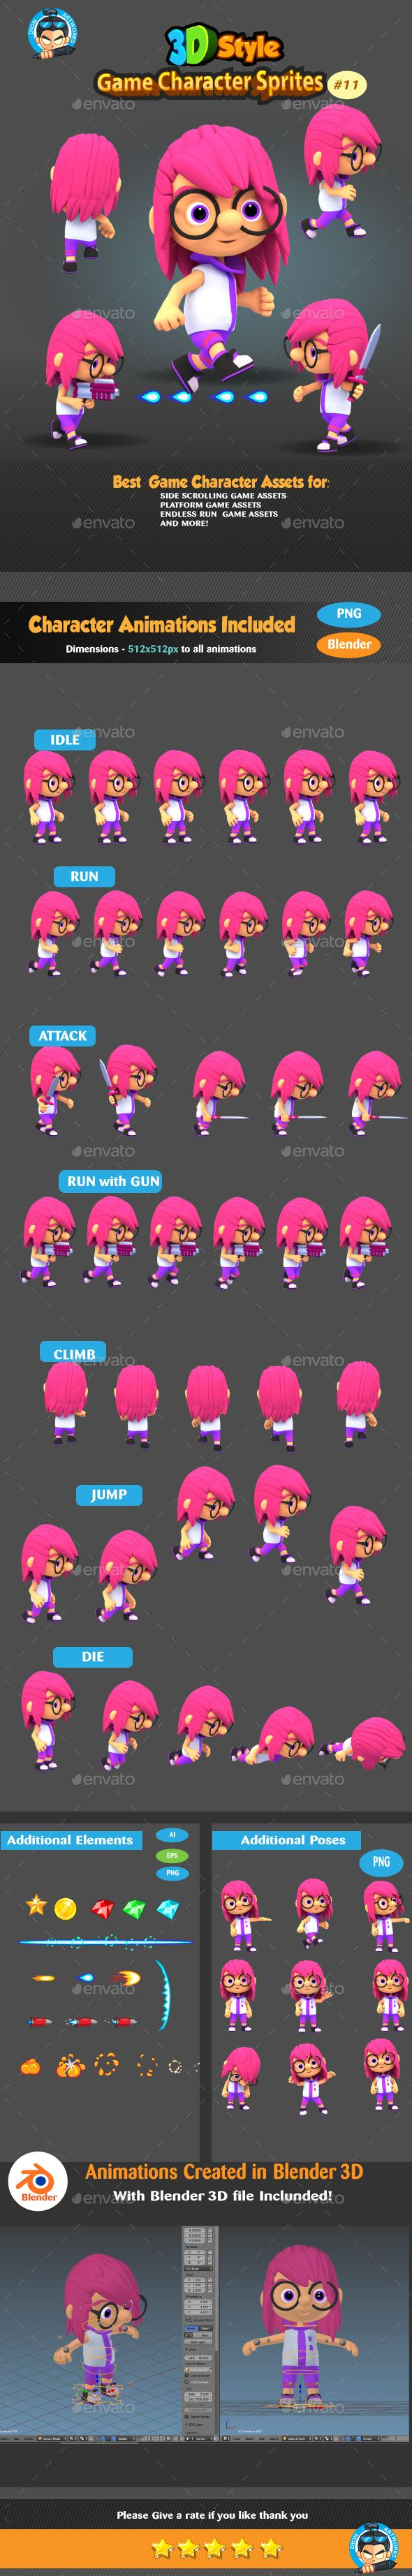 3D Rendered Game Character Sprites Design Template 11 - Sprites Game Assets Design Template Vector EPS, AI Illustrator. Download here: https://graphicriver.net/item/3d-rendered-game-character-sprites-11/19332362?ref=yinkira